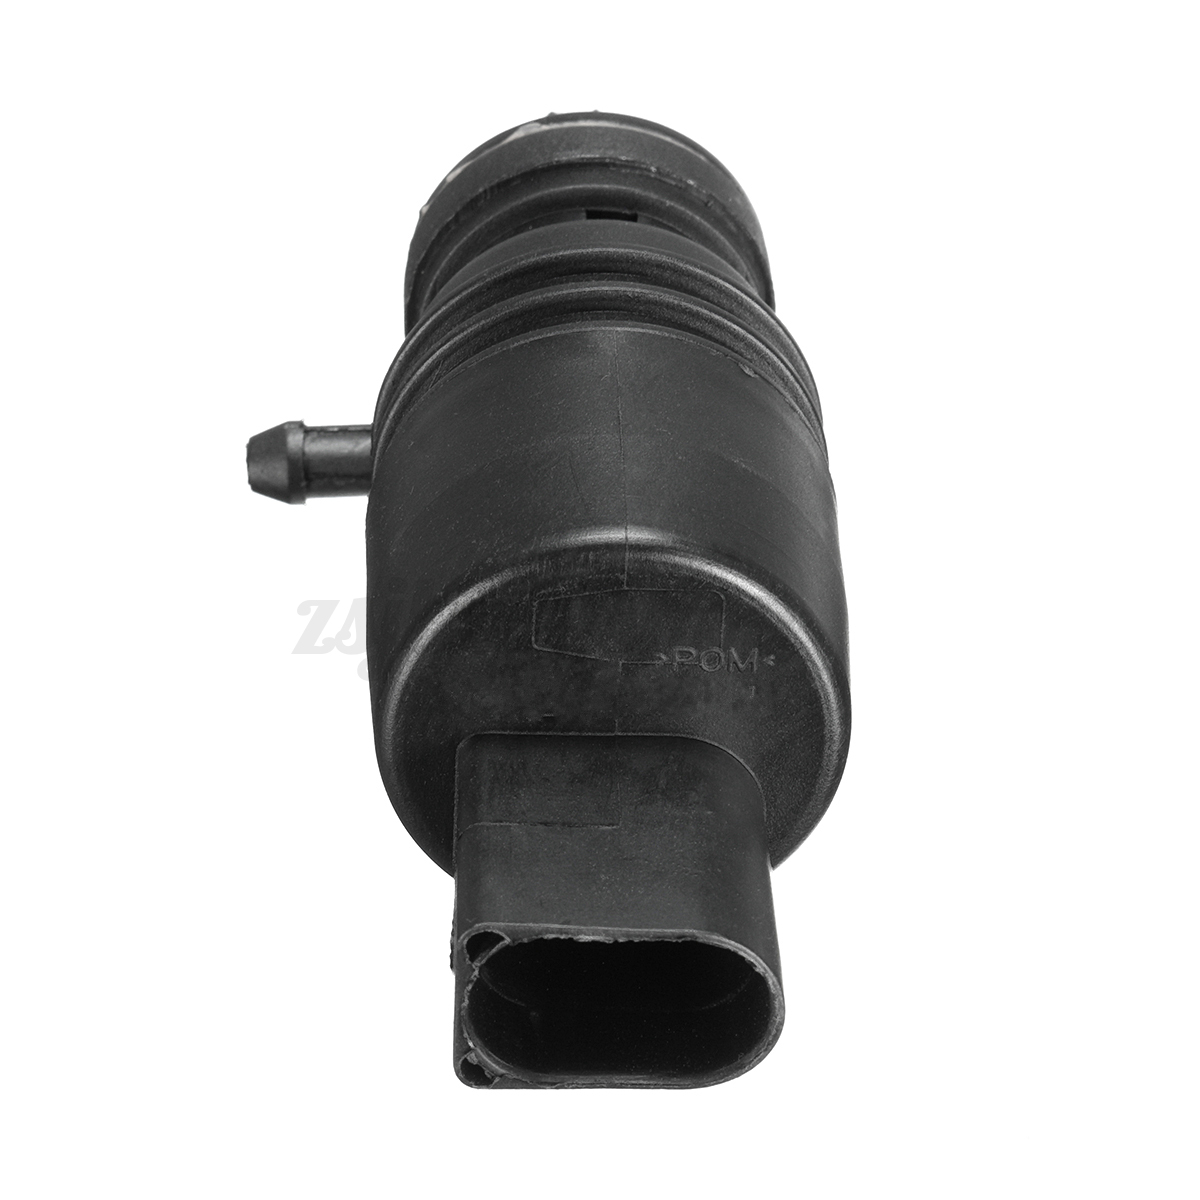 Replace Windshield Washer Motor 2003 Bmw M5 Amazon Com